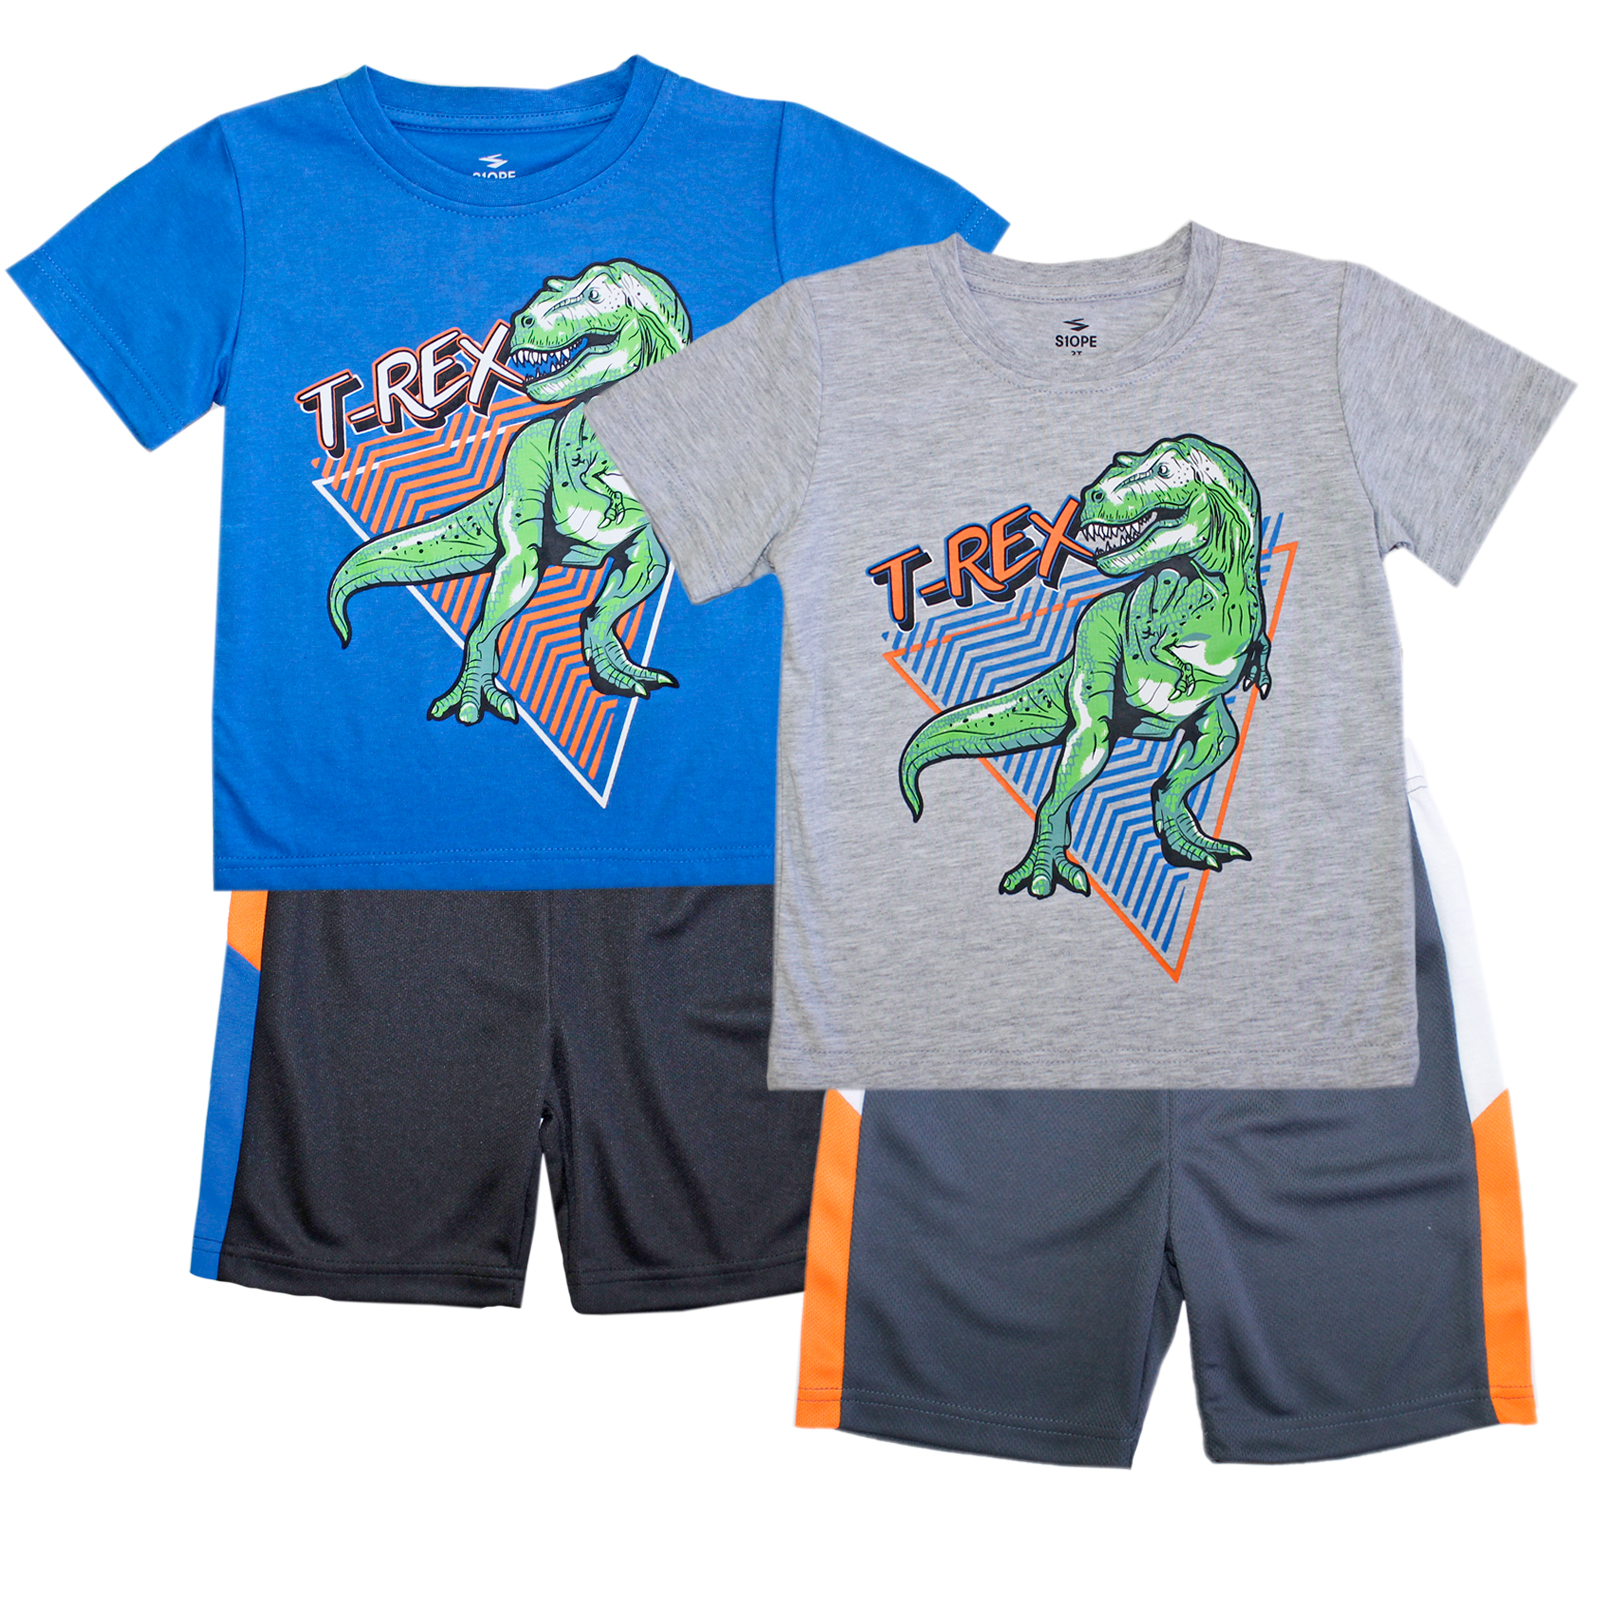 S1OPE Toddler T-Rex Screen Athletic Mesh Short Sets